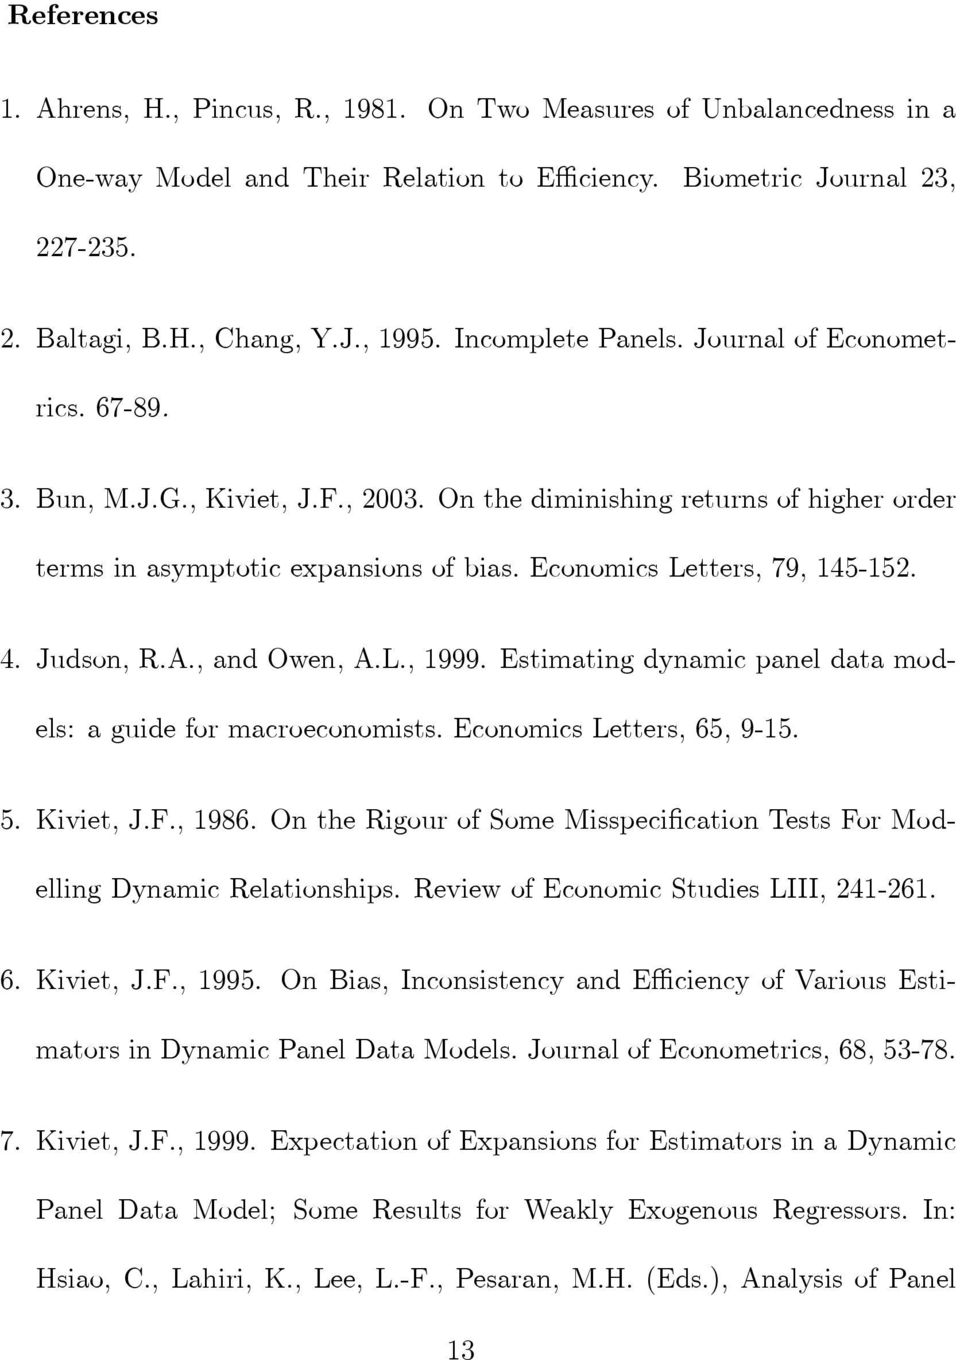 Economics Letters, 79, 145-152. 4. Judson, R.A., and Owen, A.L., 1999. Estimating dynamic panel data models: a guide for macroeconomists. Economics Letters, 65, 9-15. 5. Kiviet, J.F., 1986.